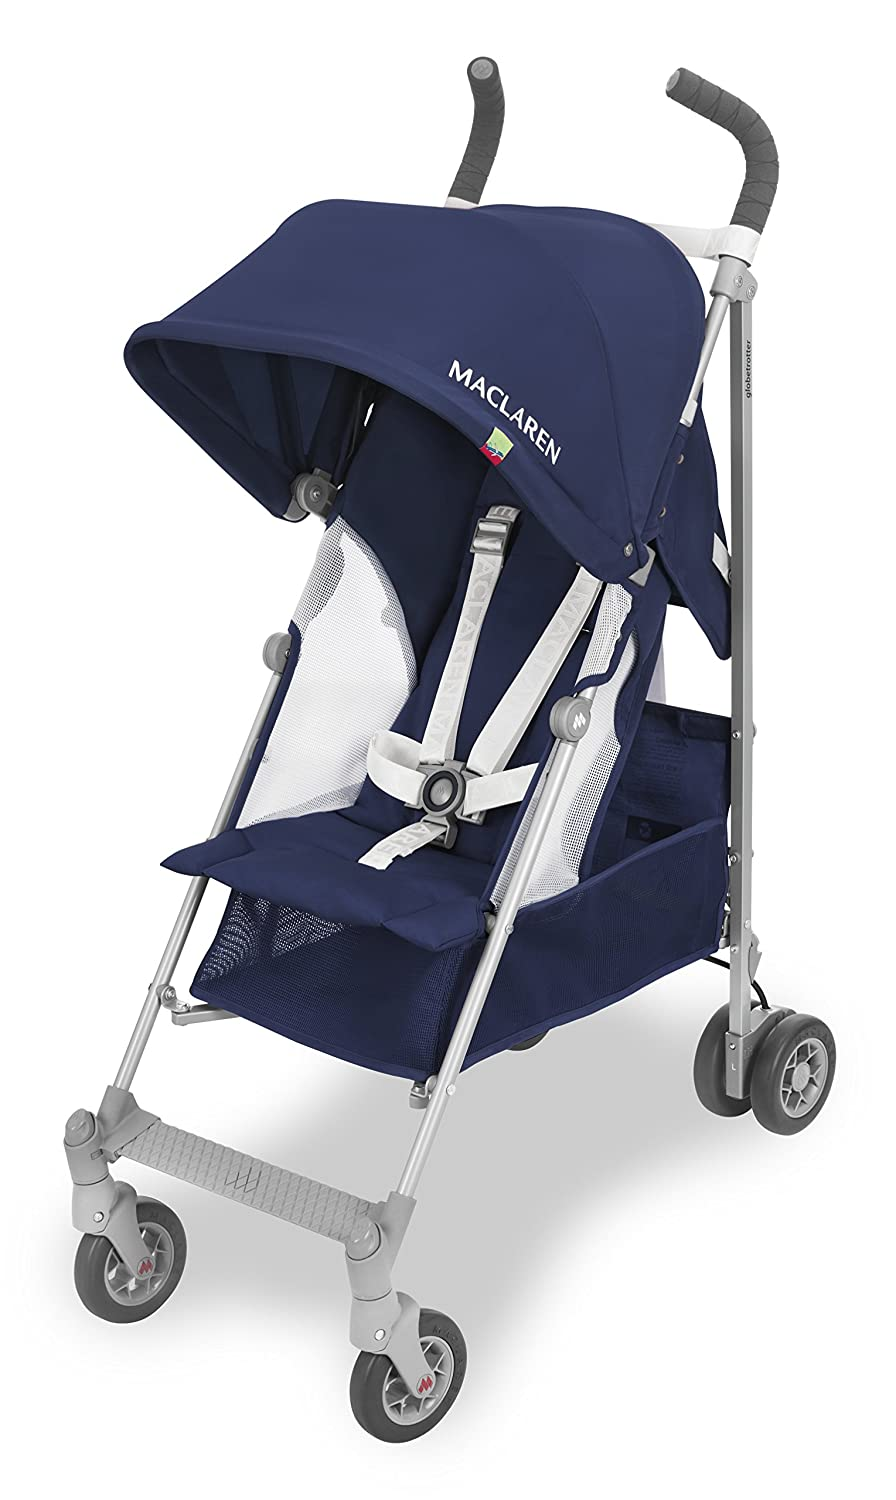 Maclaren Globetrotter Medieval Blue/White Maclaren UK Ltd. WD1G110342